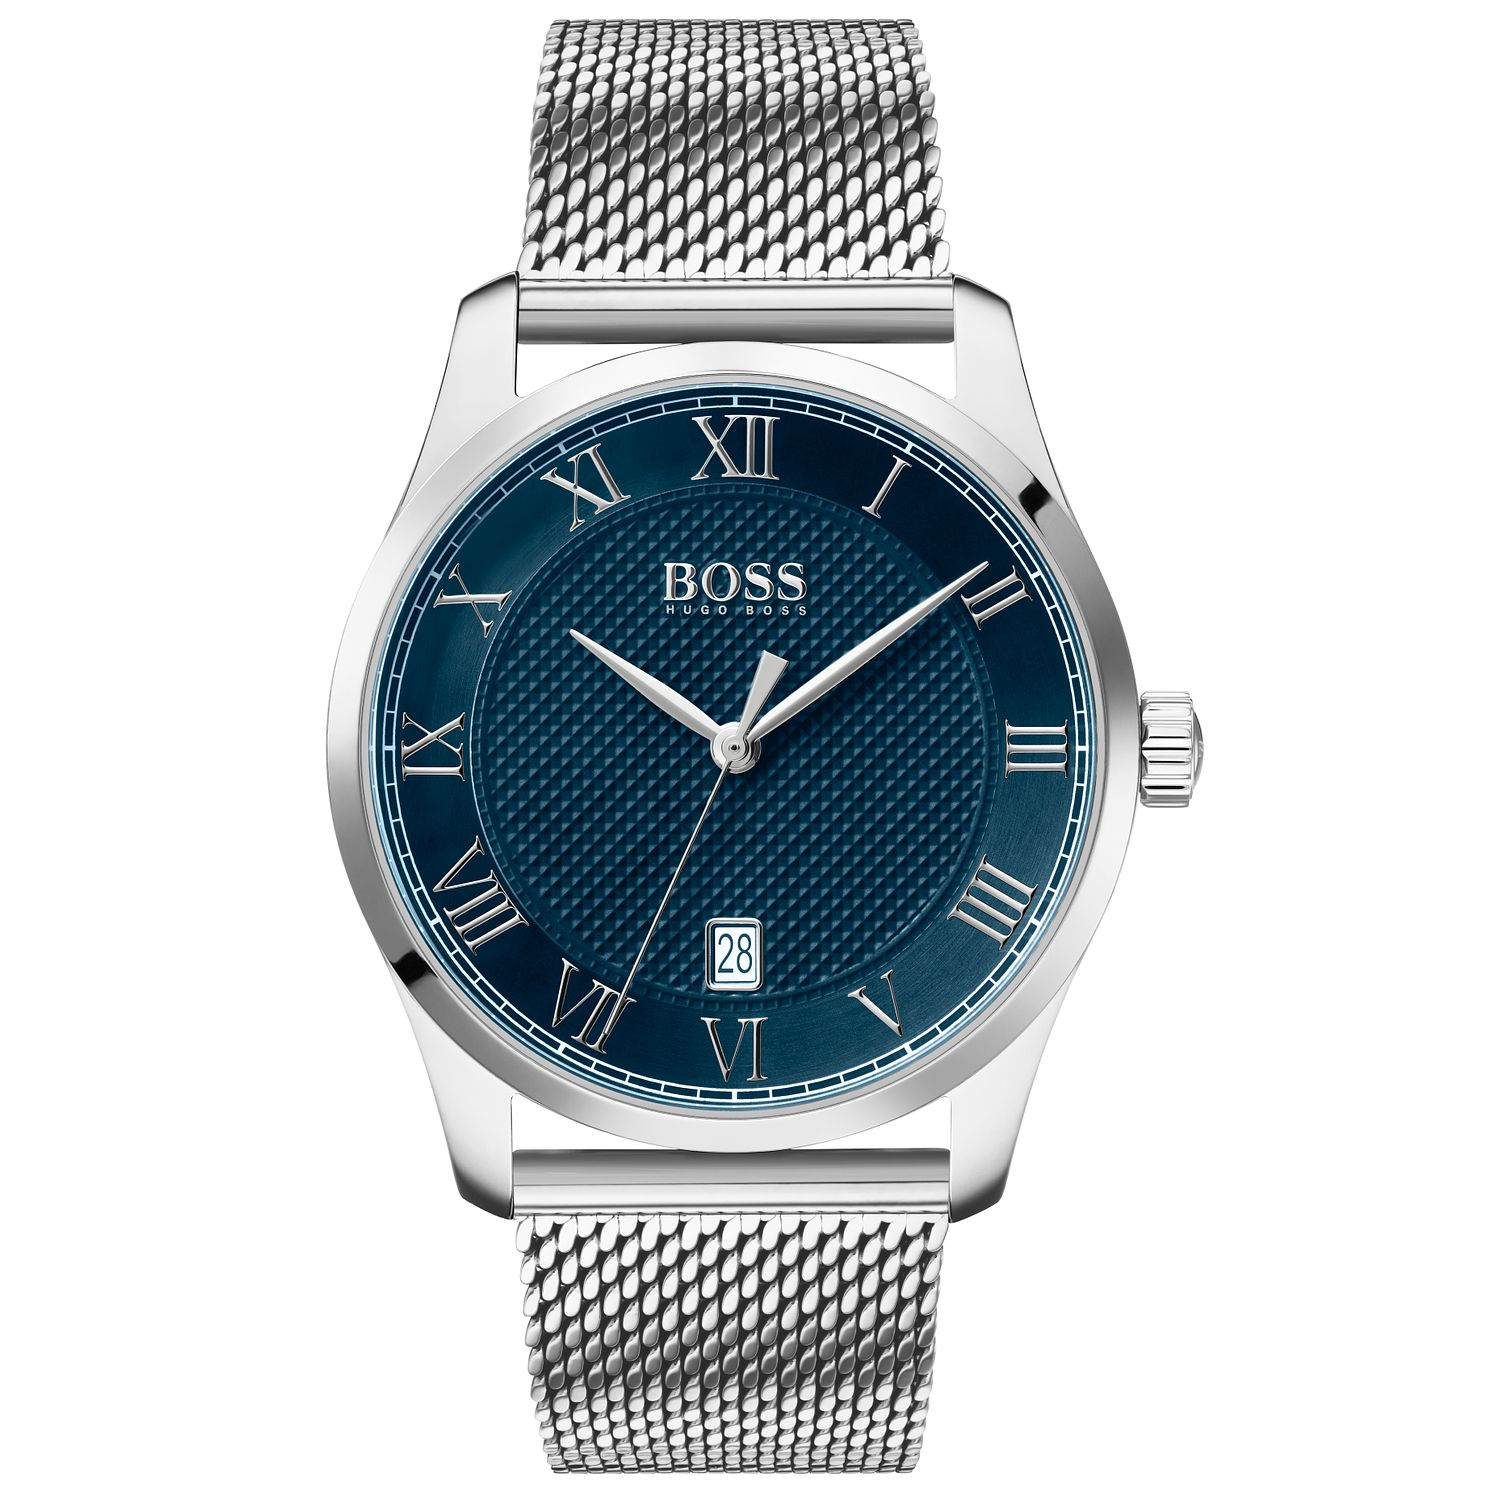 BOSS Master Men's Stainless Steel Mesh Bracelet Watch - Product number 2776766